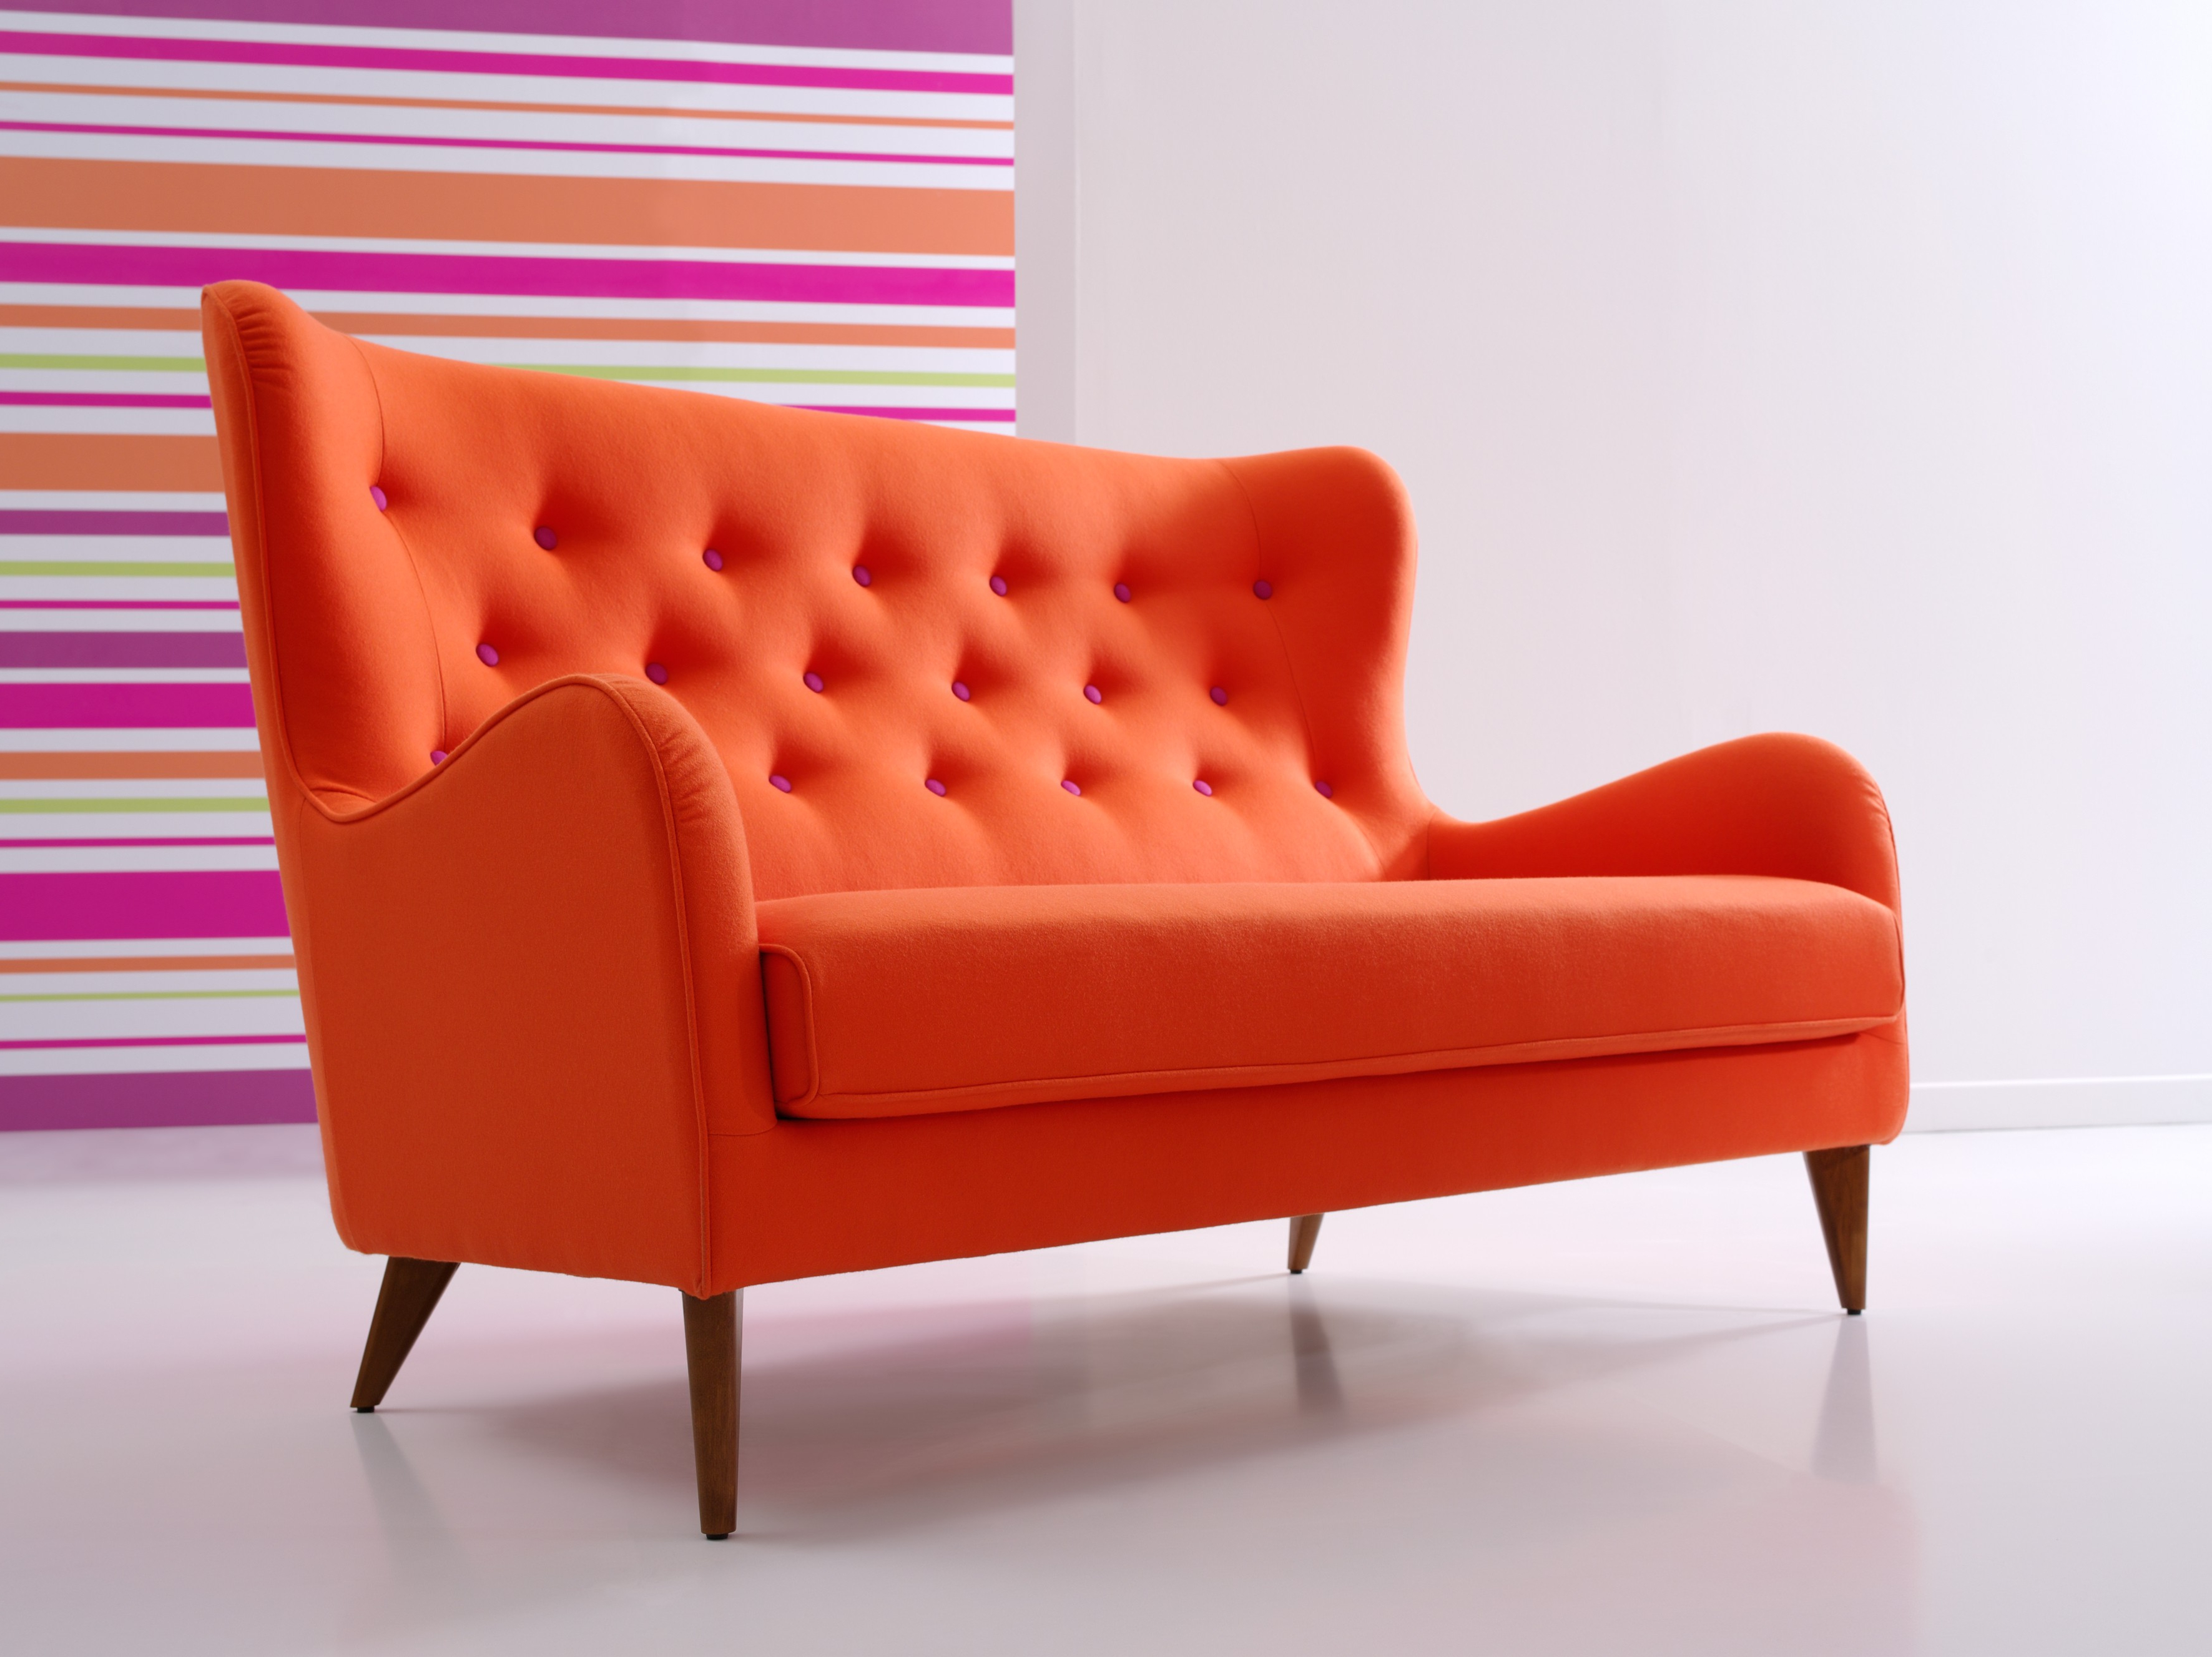 Preferred Sofa With Romantic Modern Color Combine Curve Arm And Backrest Plus With Orange Sofa Chairs (View 11 of 20)